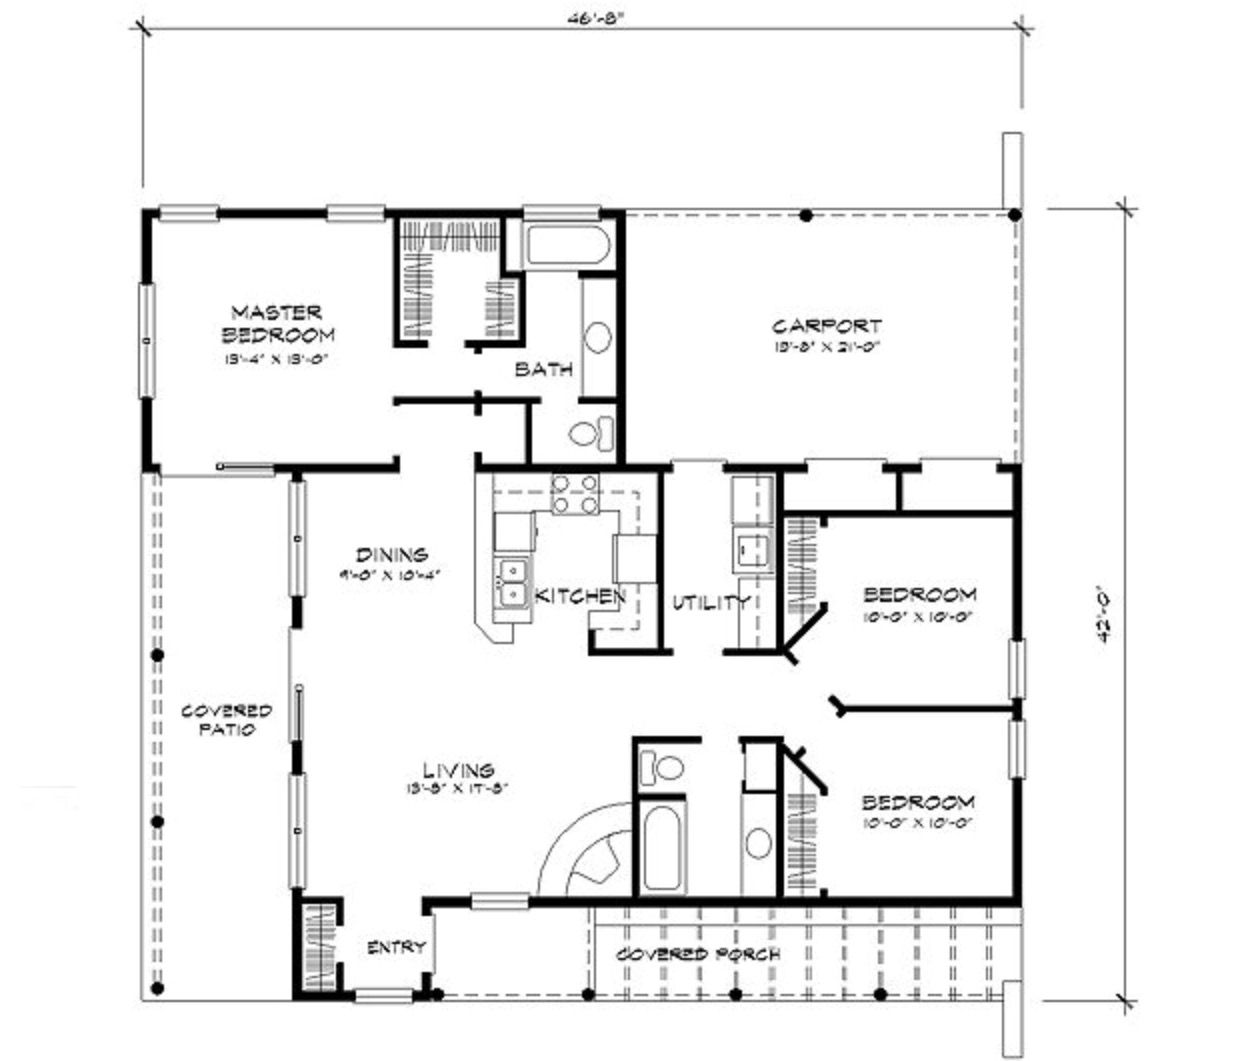 Small adobe house plan with split bedrooms open floor plan carport 3 bedrooms 2 baths and 1263 square feet of living space